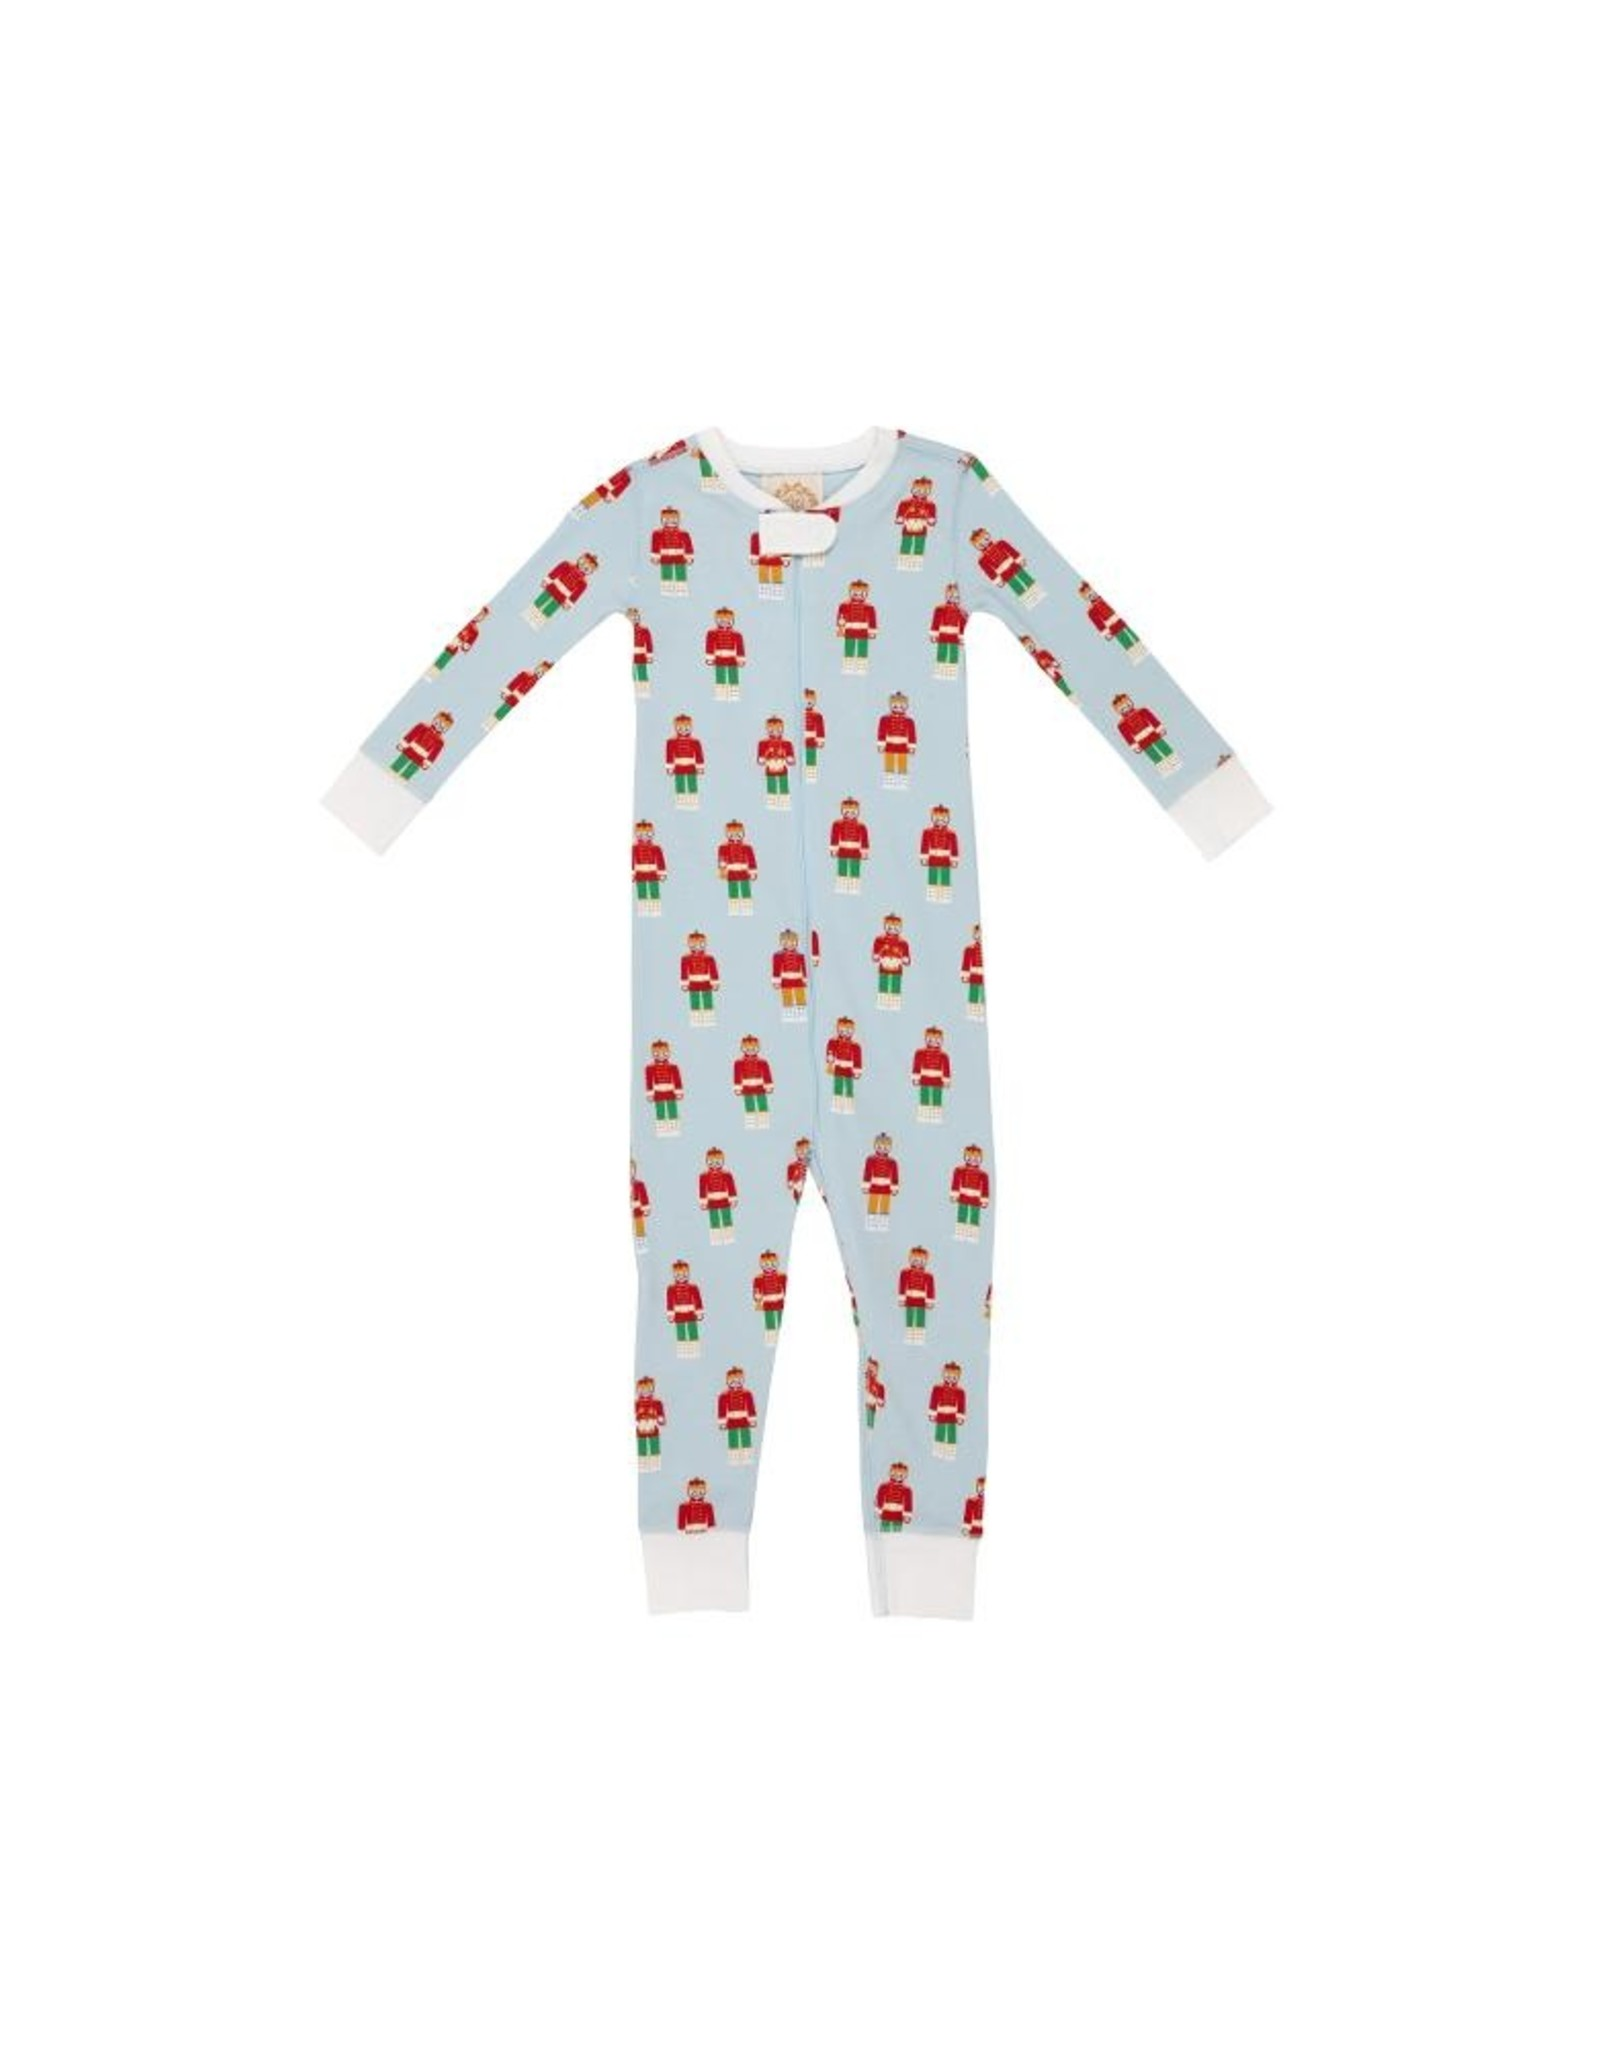 The Beaufort Bonnet Company Knoxs Night Night Non-Footed North Pole Prince 2t